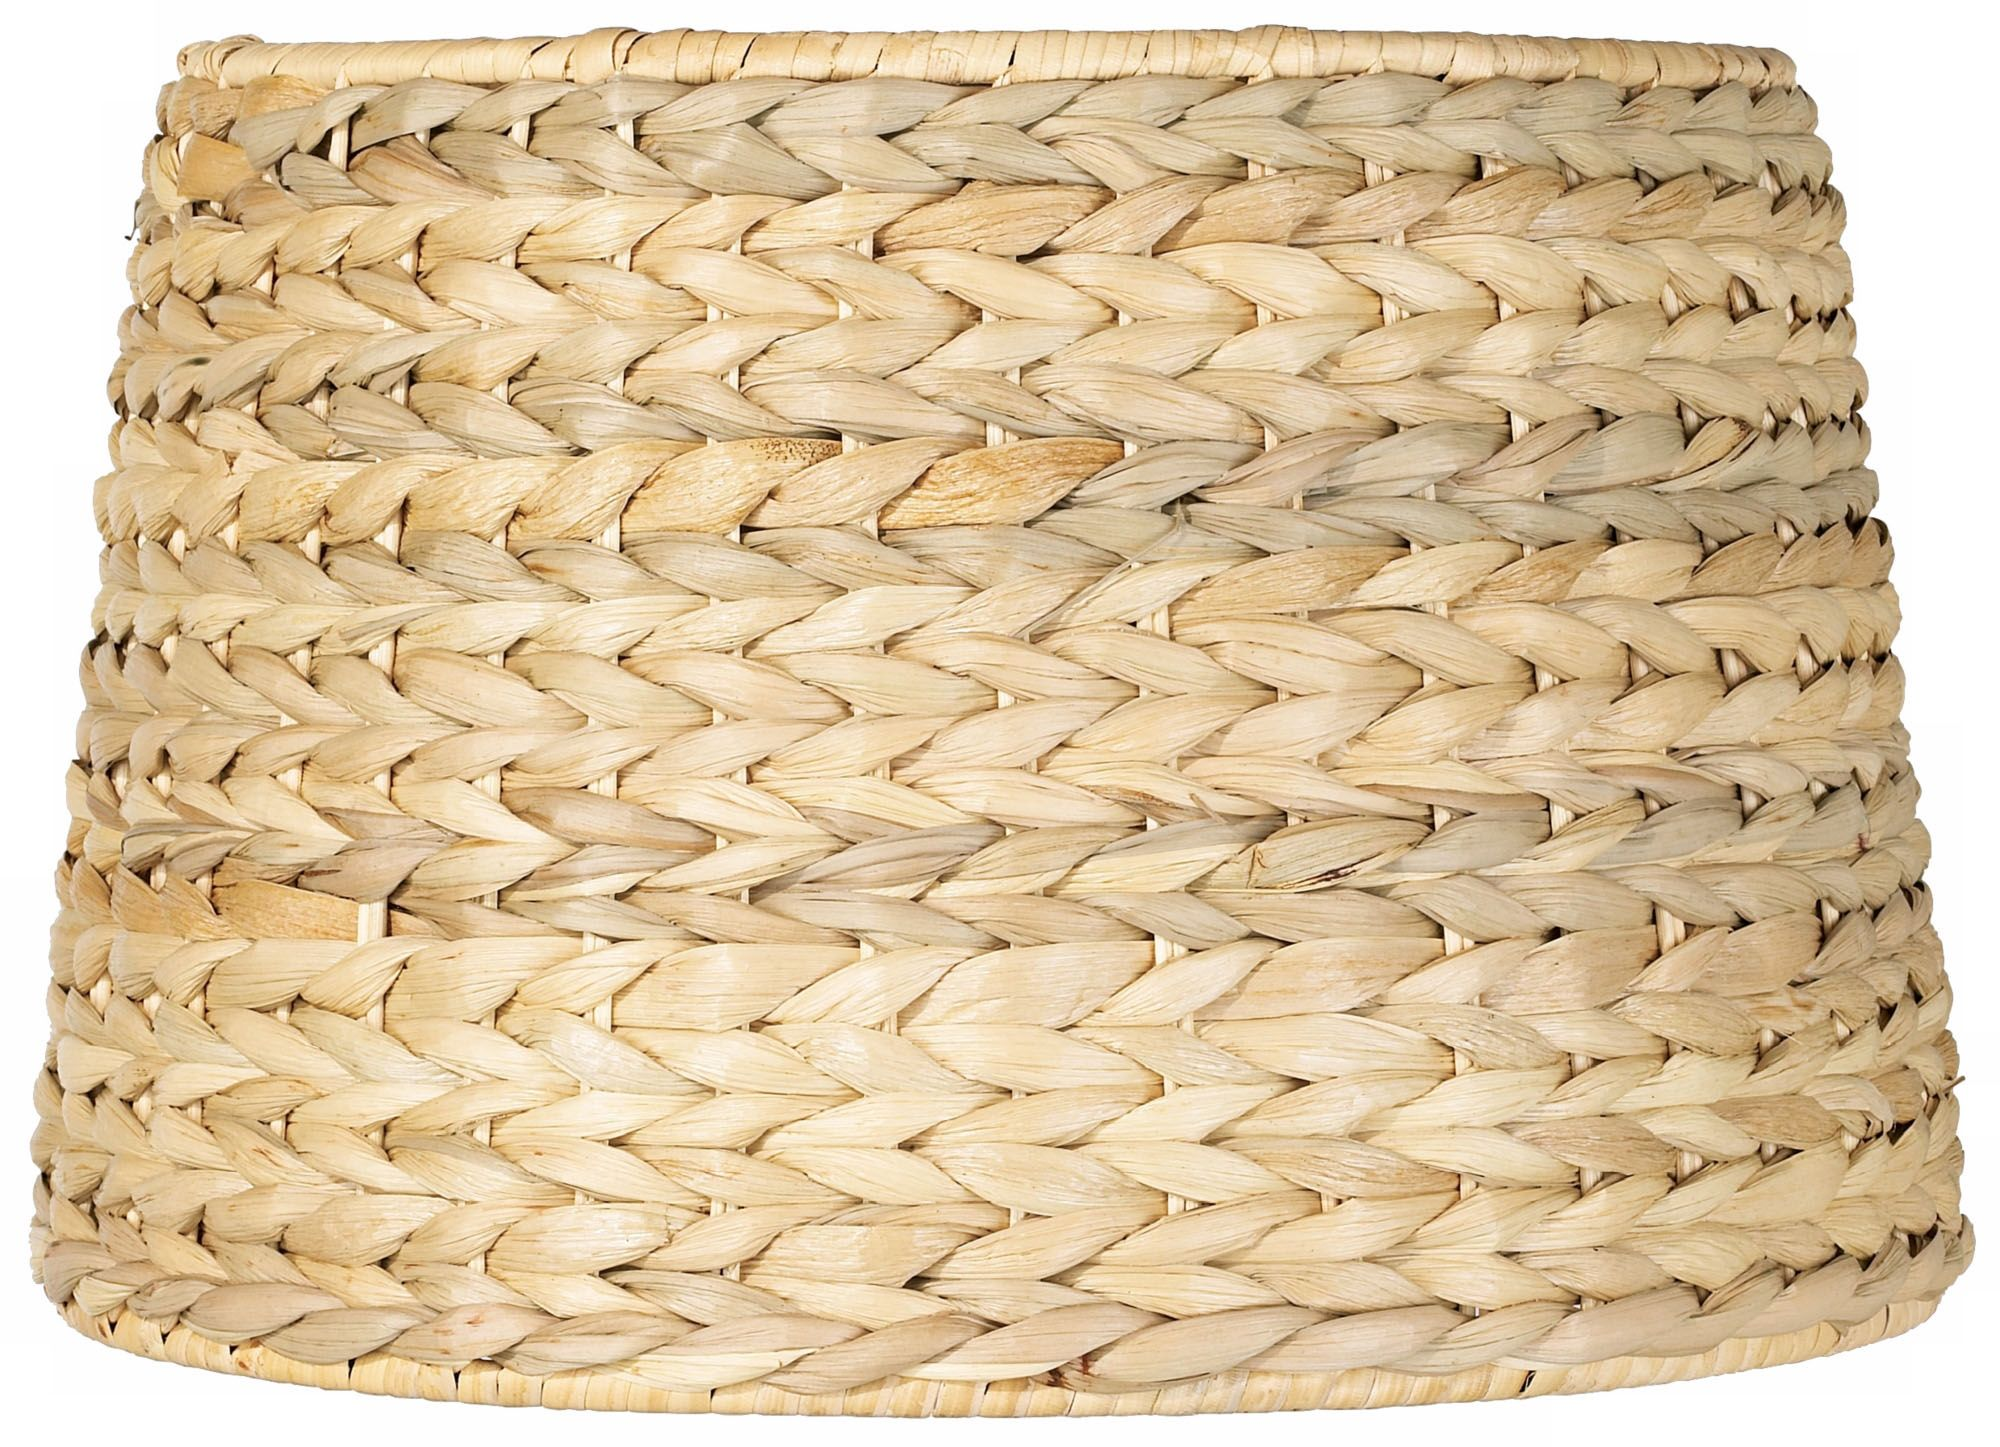 woven seagrass drum shade 10x12x825 spider - Drum Shade